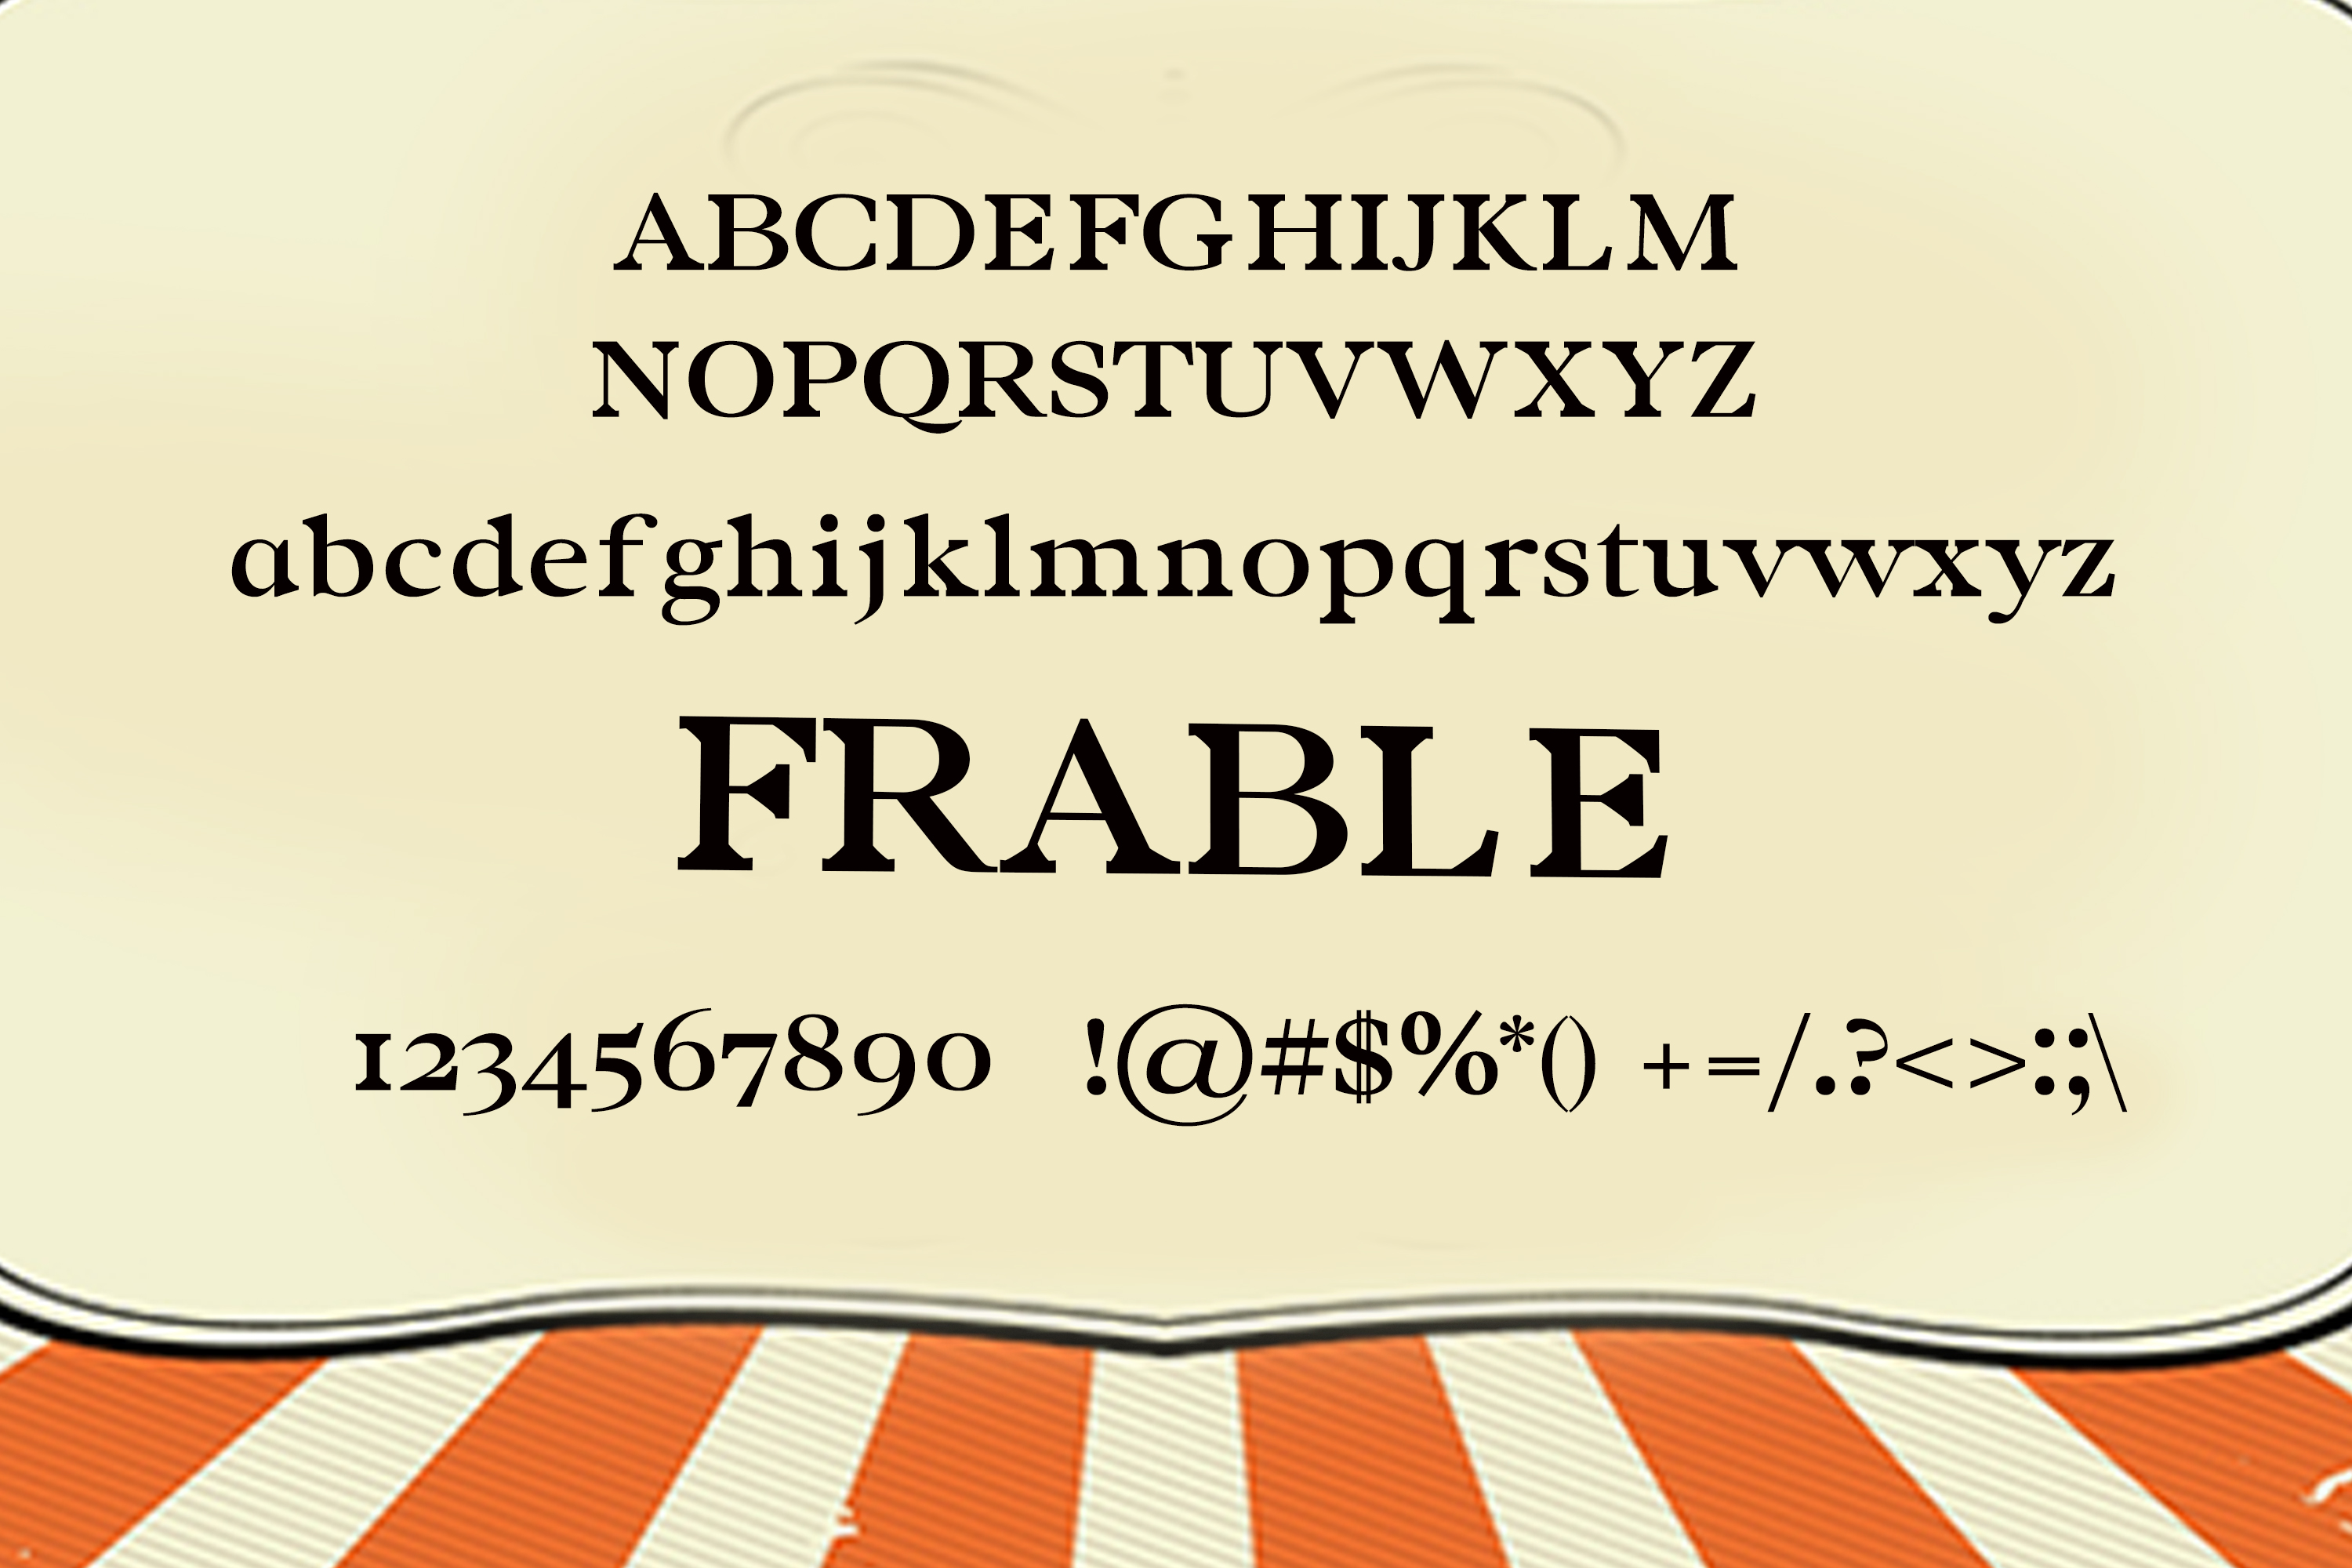 Frable Font example image 2